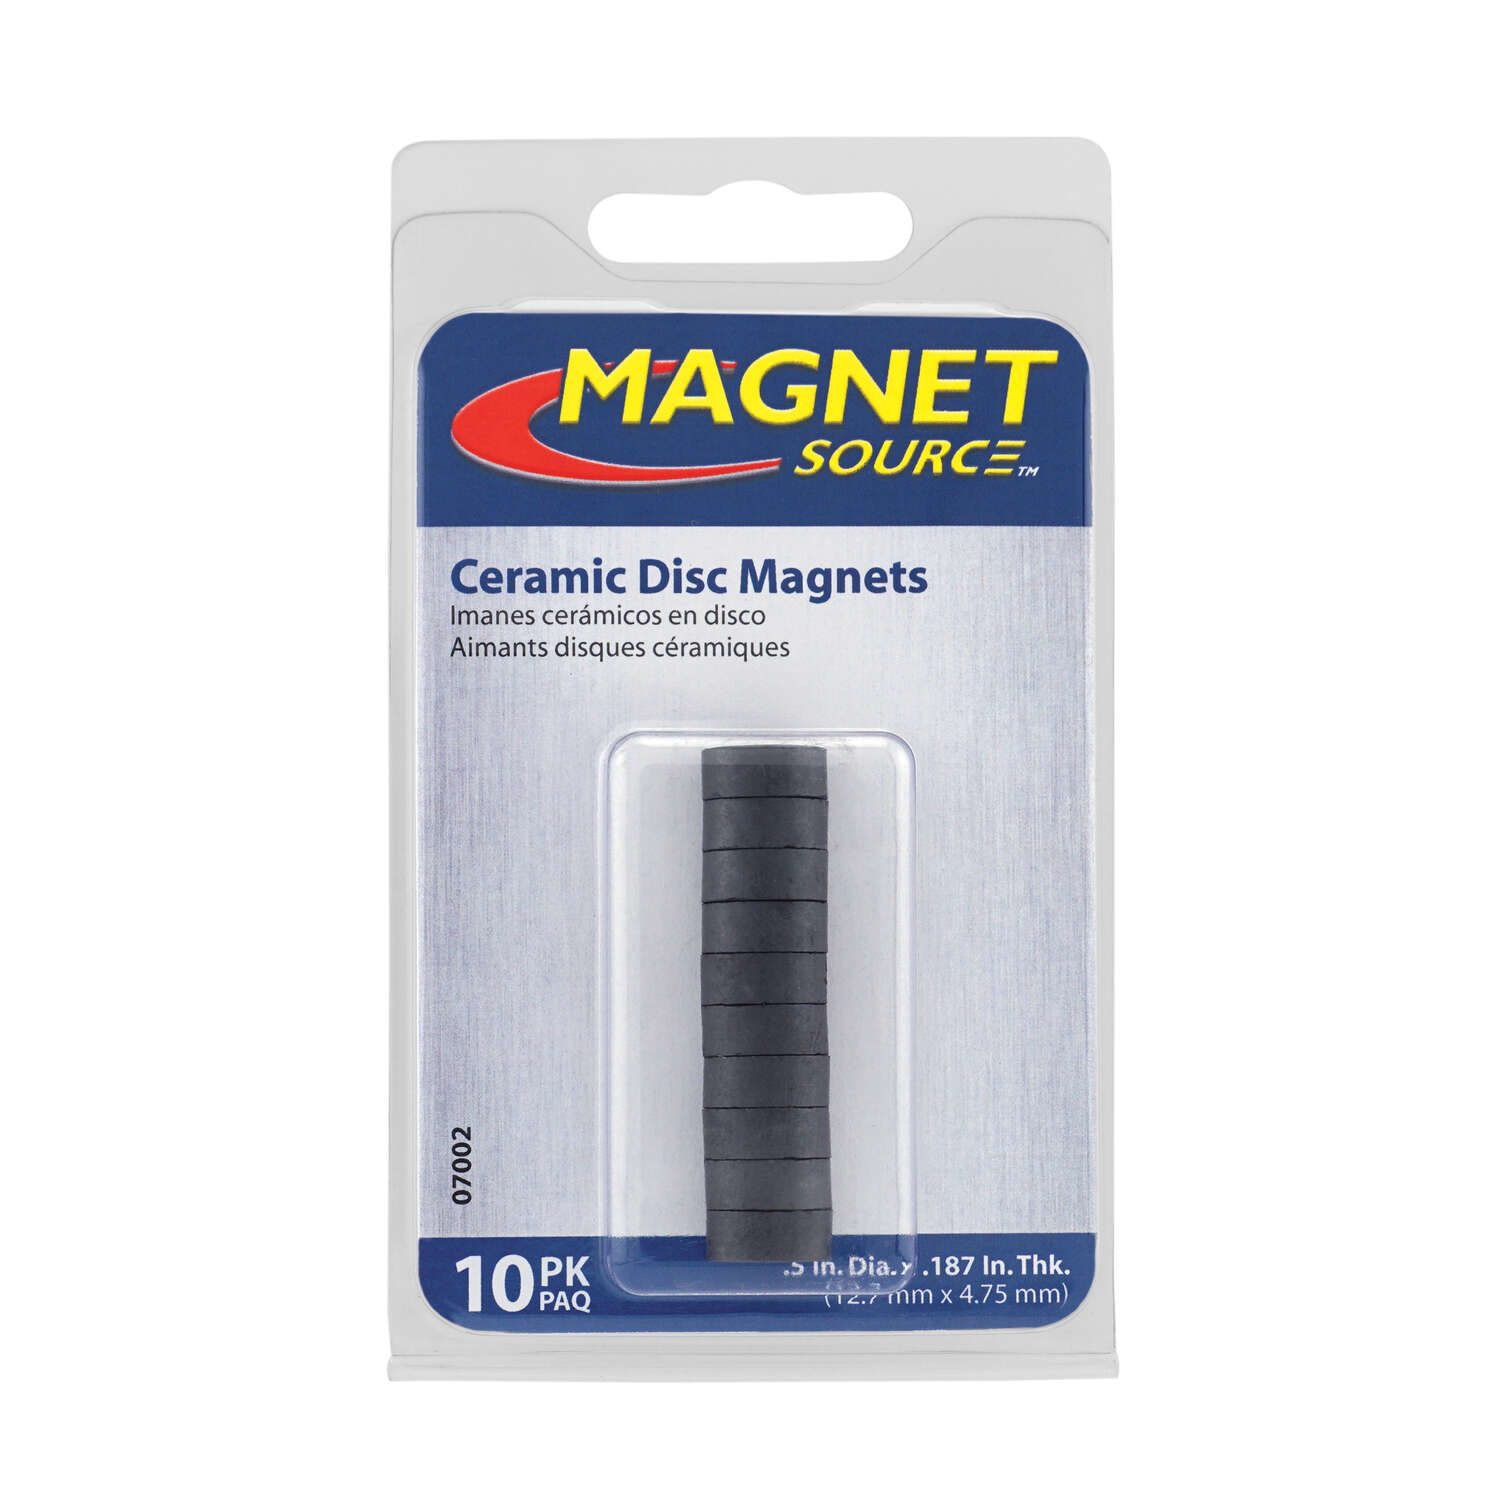 Master Magnetics  The Magnet Source  .187 in. Ceramic  Disc Magnets  Disc  3.5 MGOe Black  10 pc. 0.